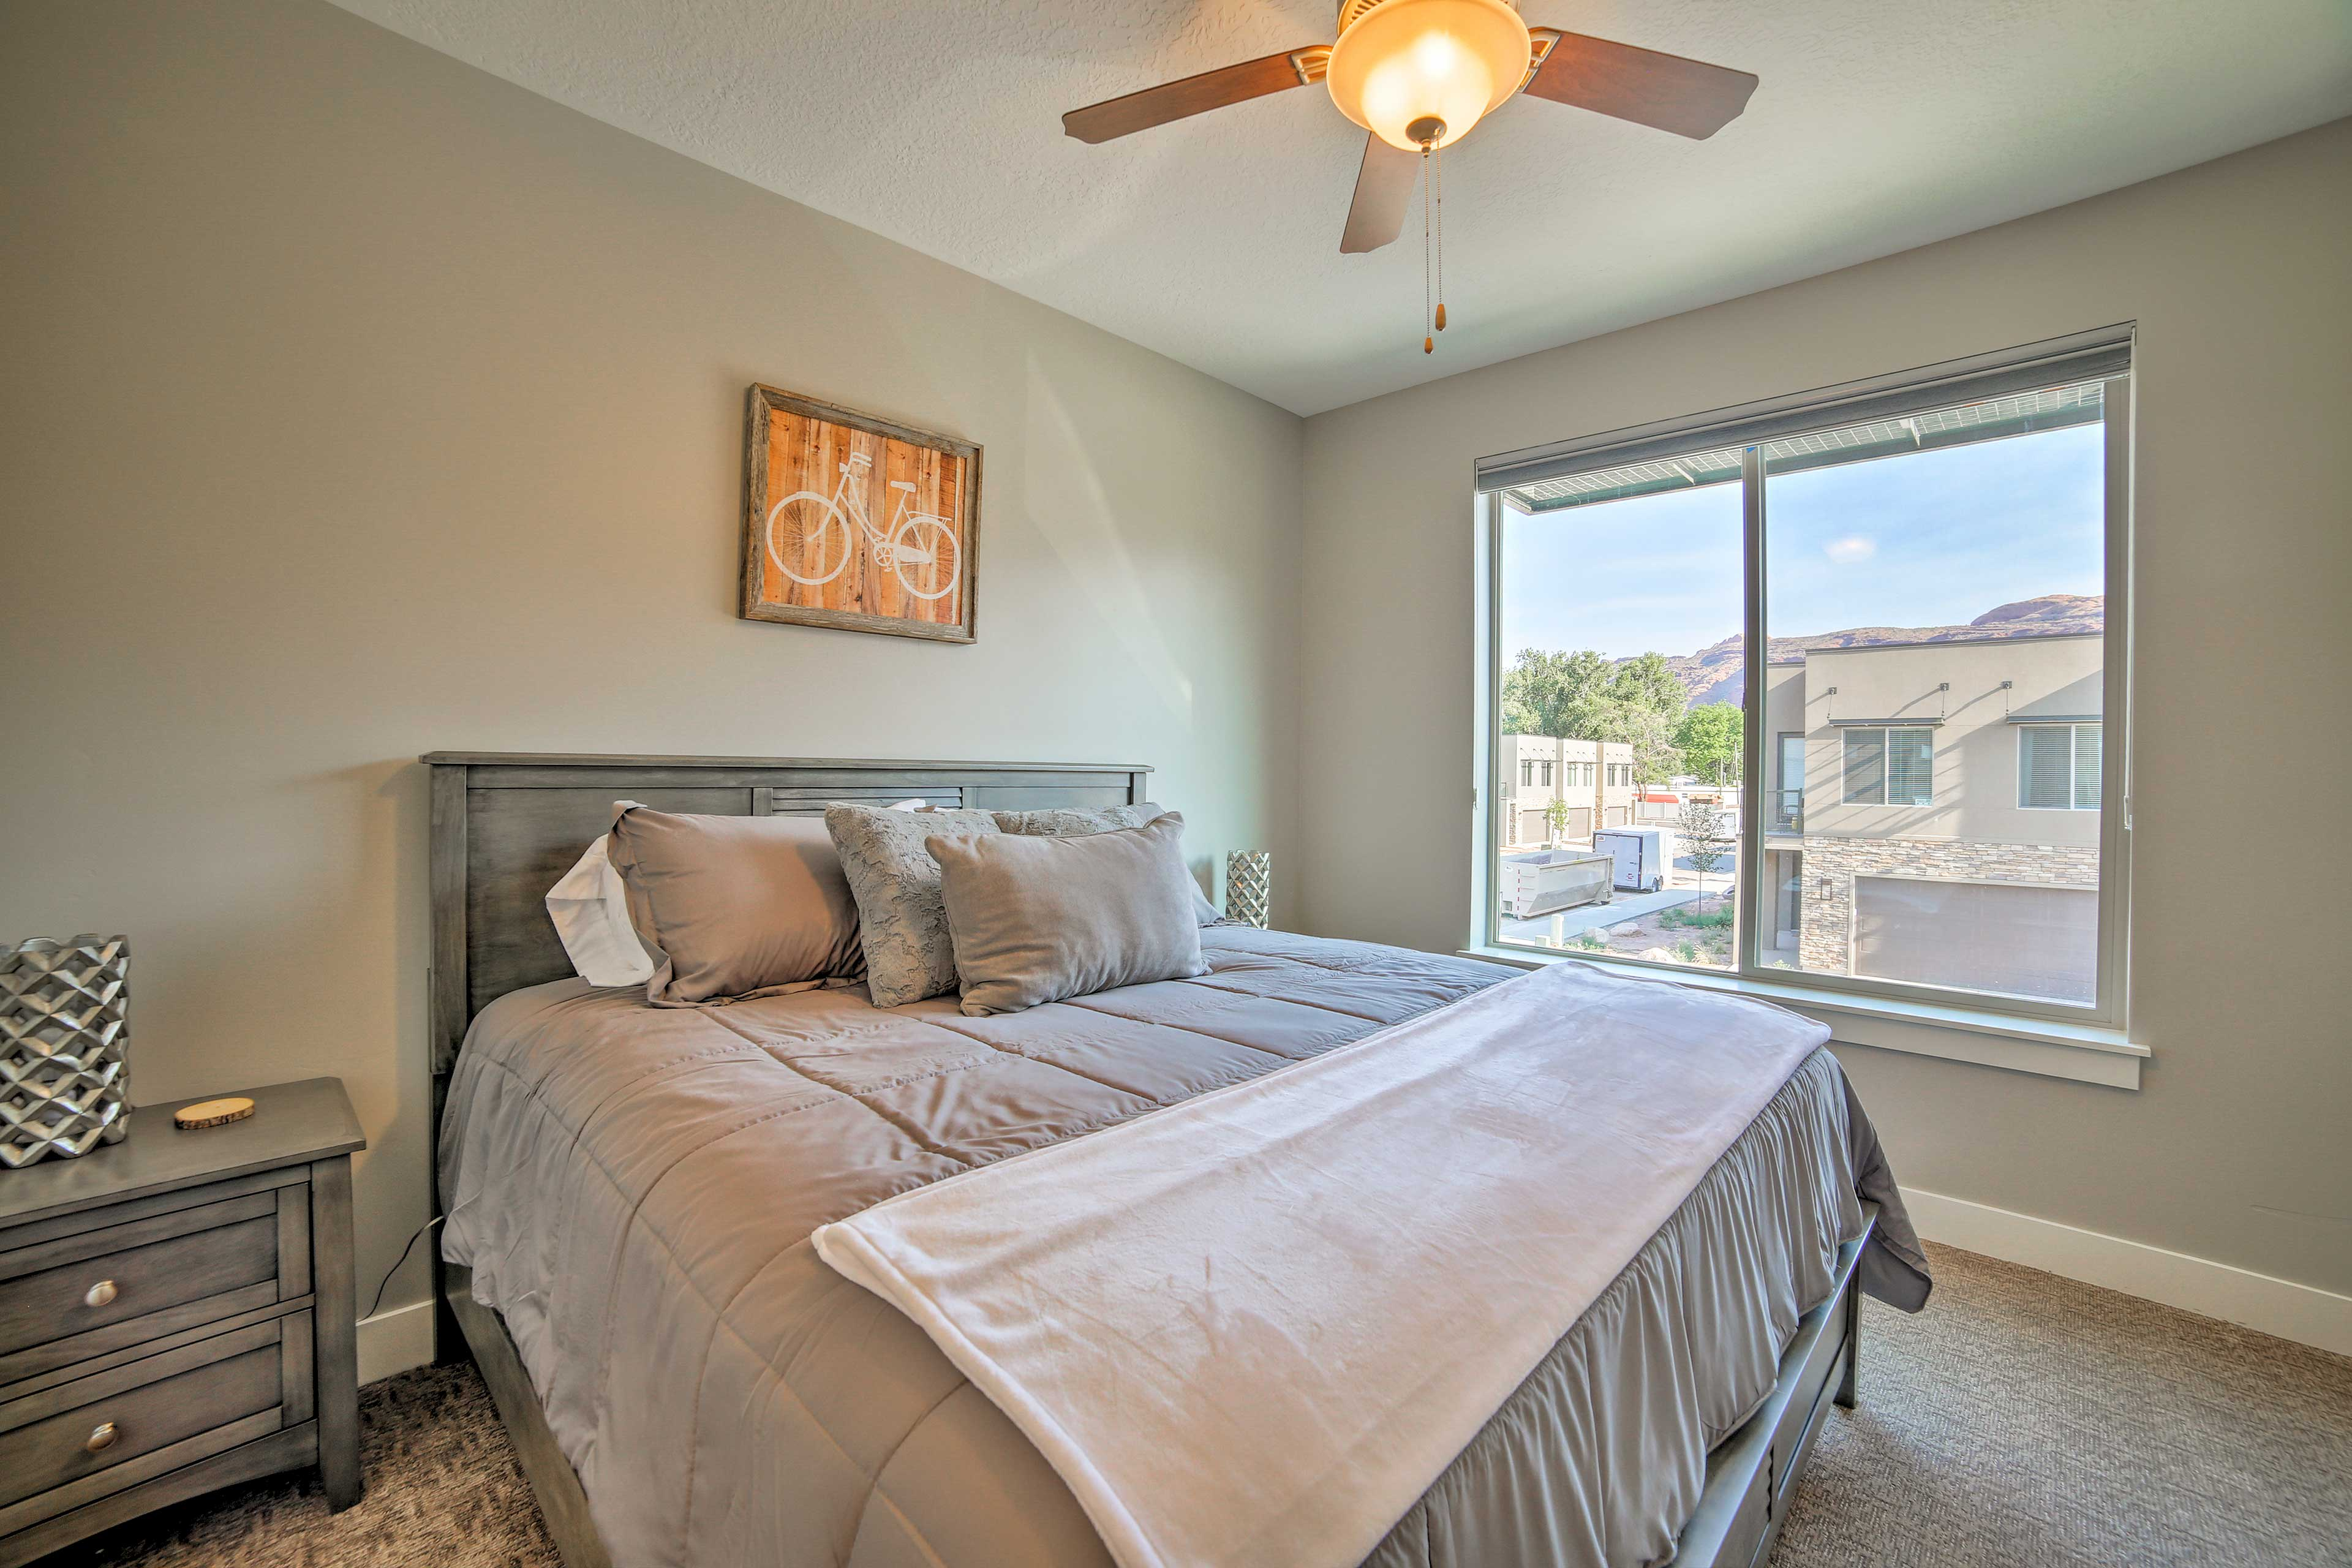 The second master bedroom features a king-sized bed and plenty of storage space.